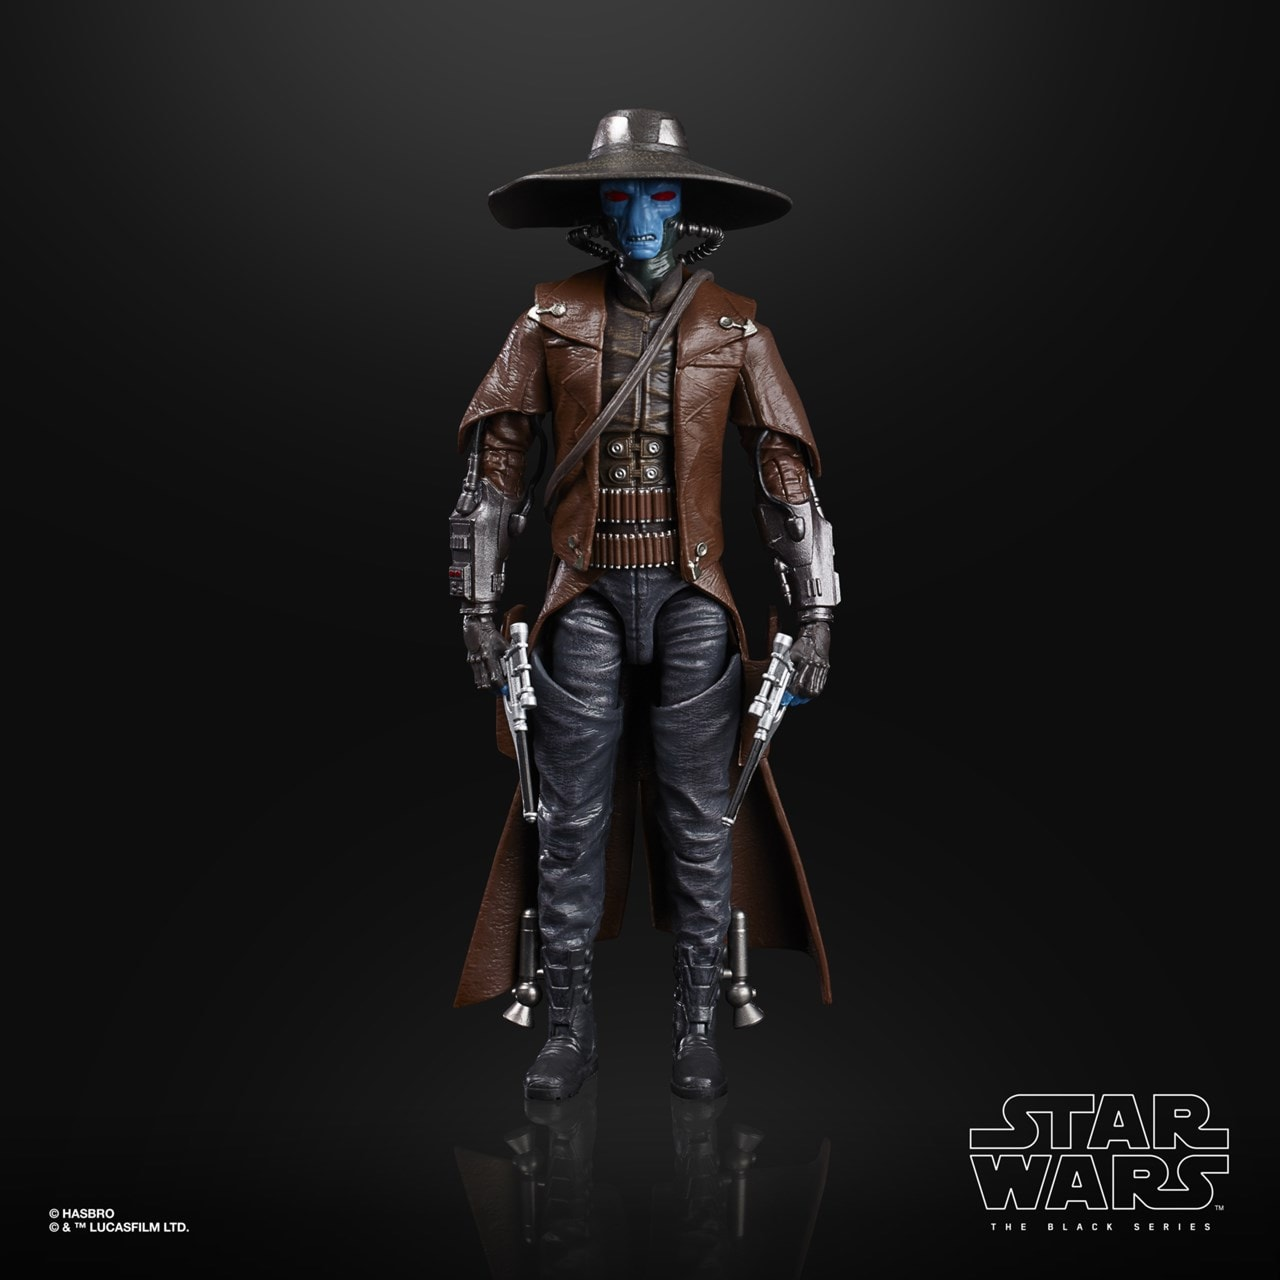 Cad Bane: Clone Wars: The Black Series: Star Wars Action Figure - 3